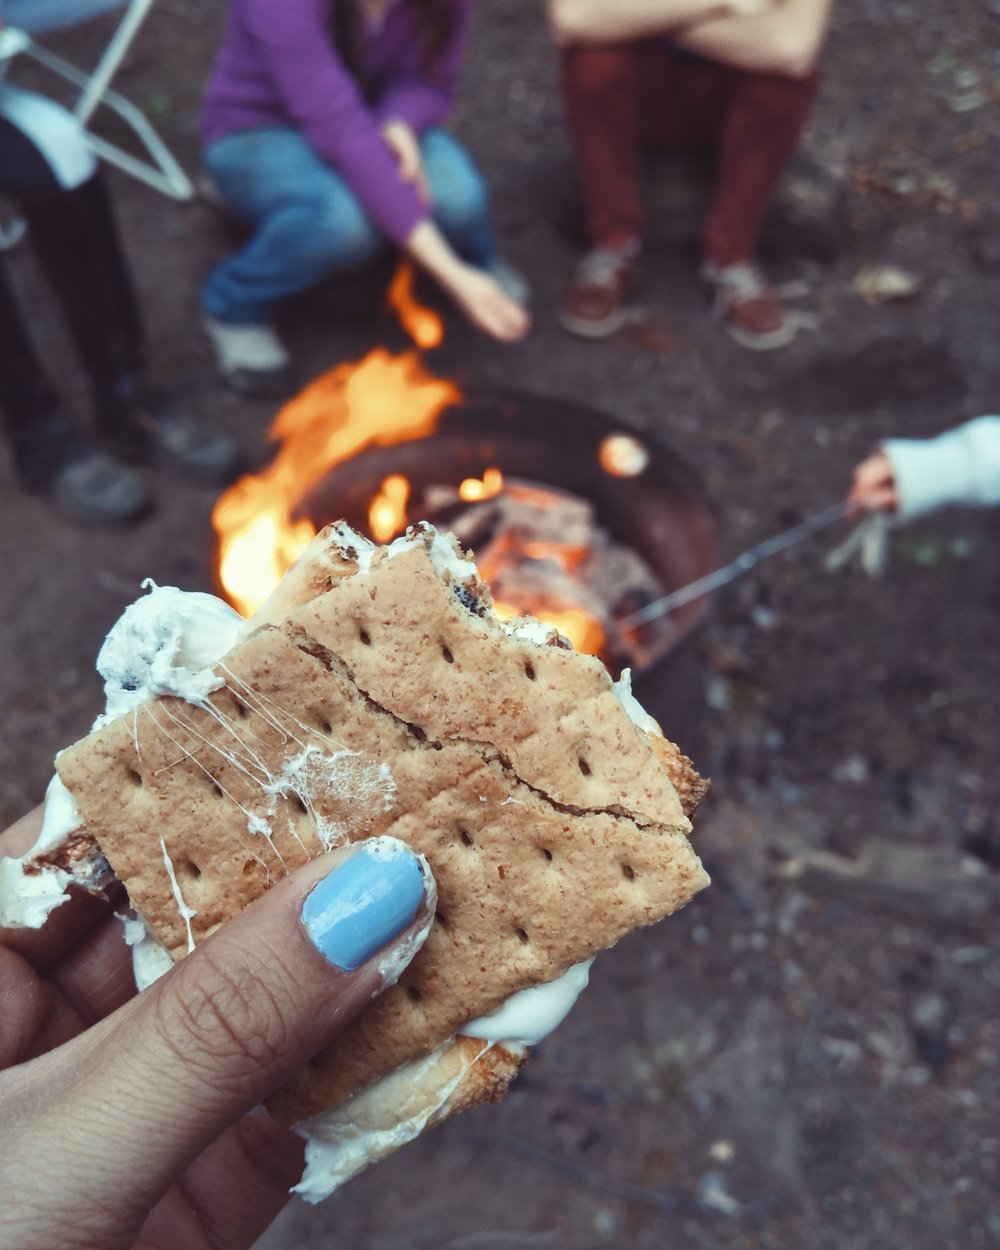 vegan_smores_desserts_for_picnics_and_vegan_barbecues.jpg